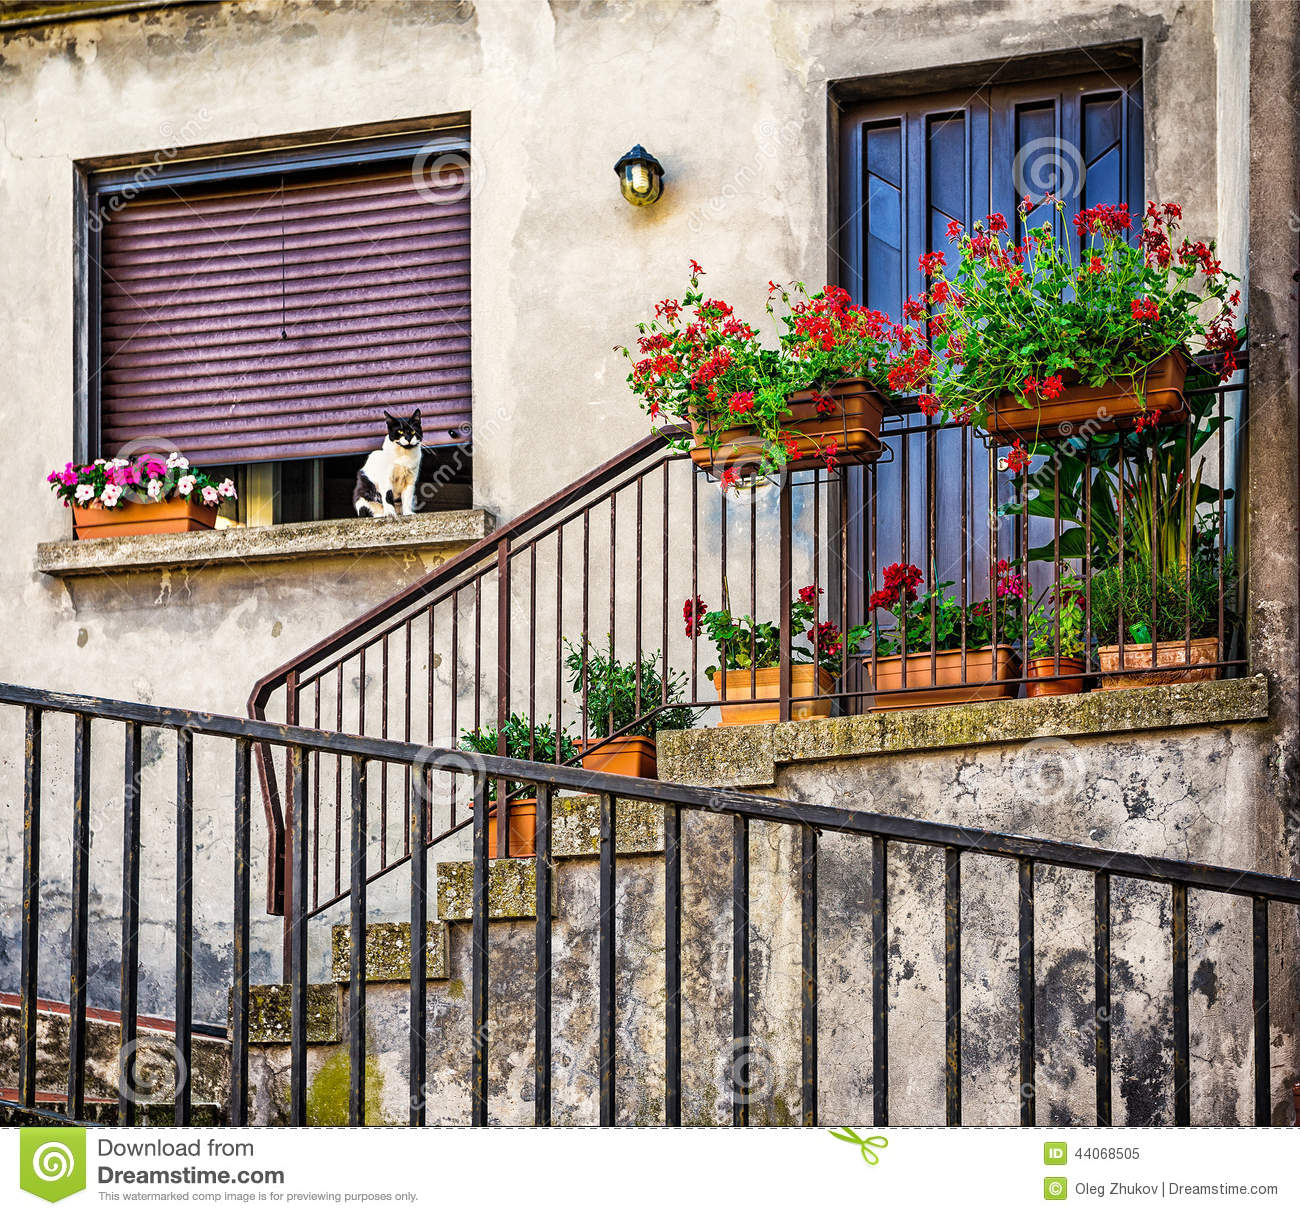 Windows and doors in an old house decorated with flower stock photo image 44068505 - How to use old doors and windows ...